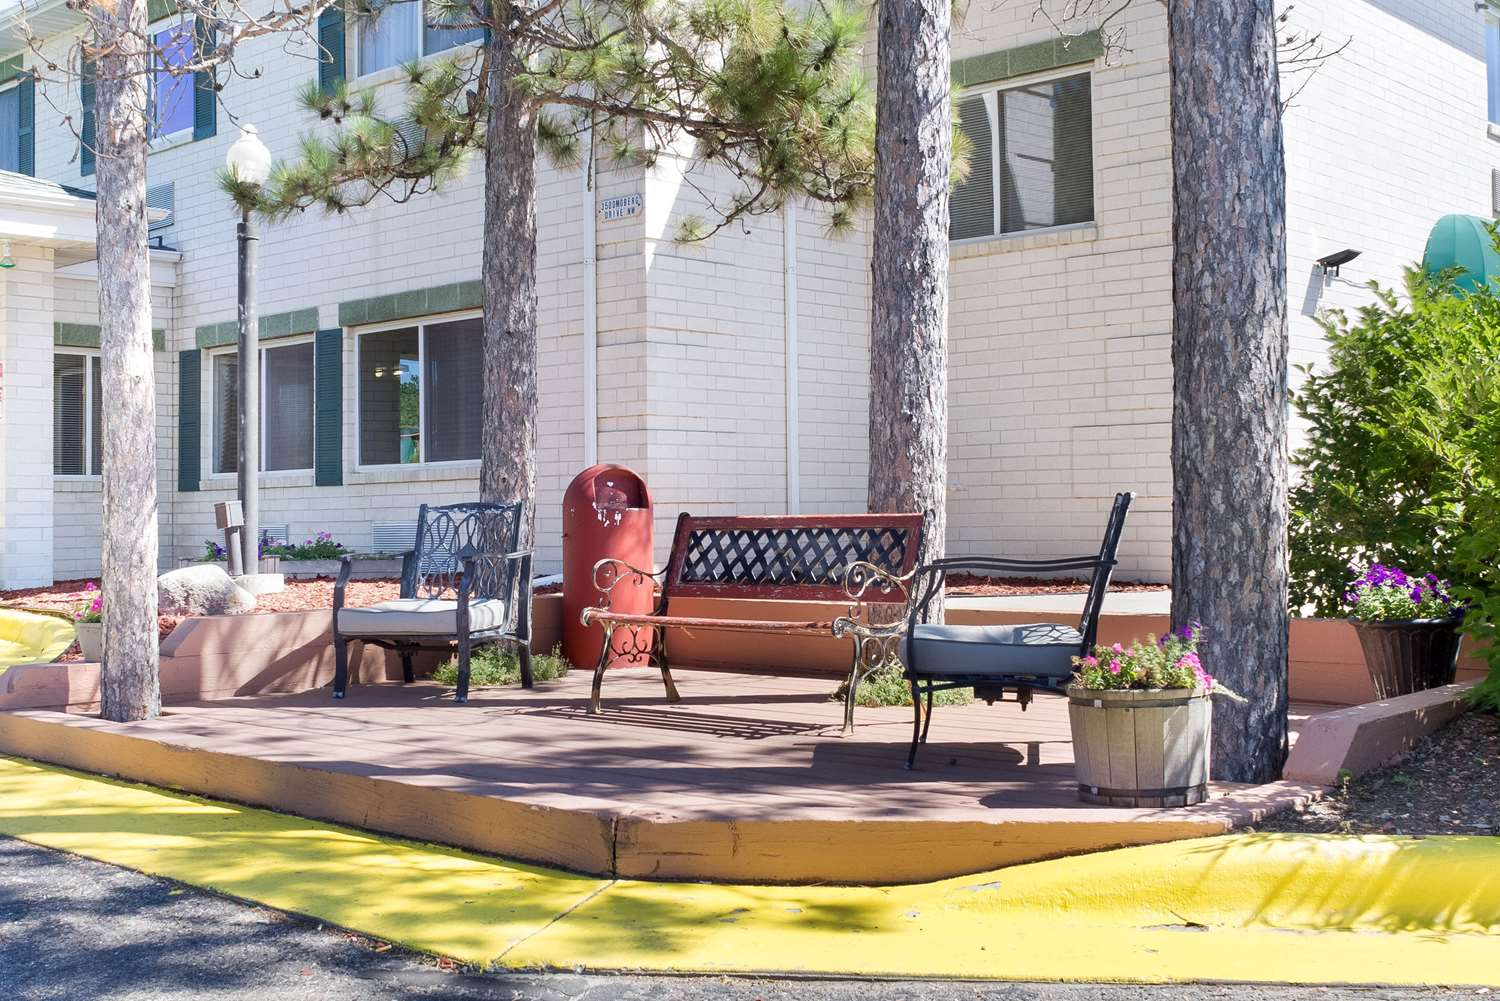 Other - Quality Inn Bemidji